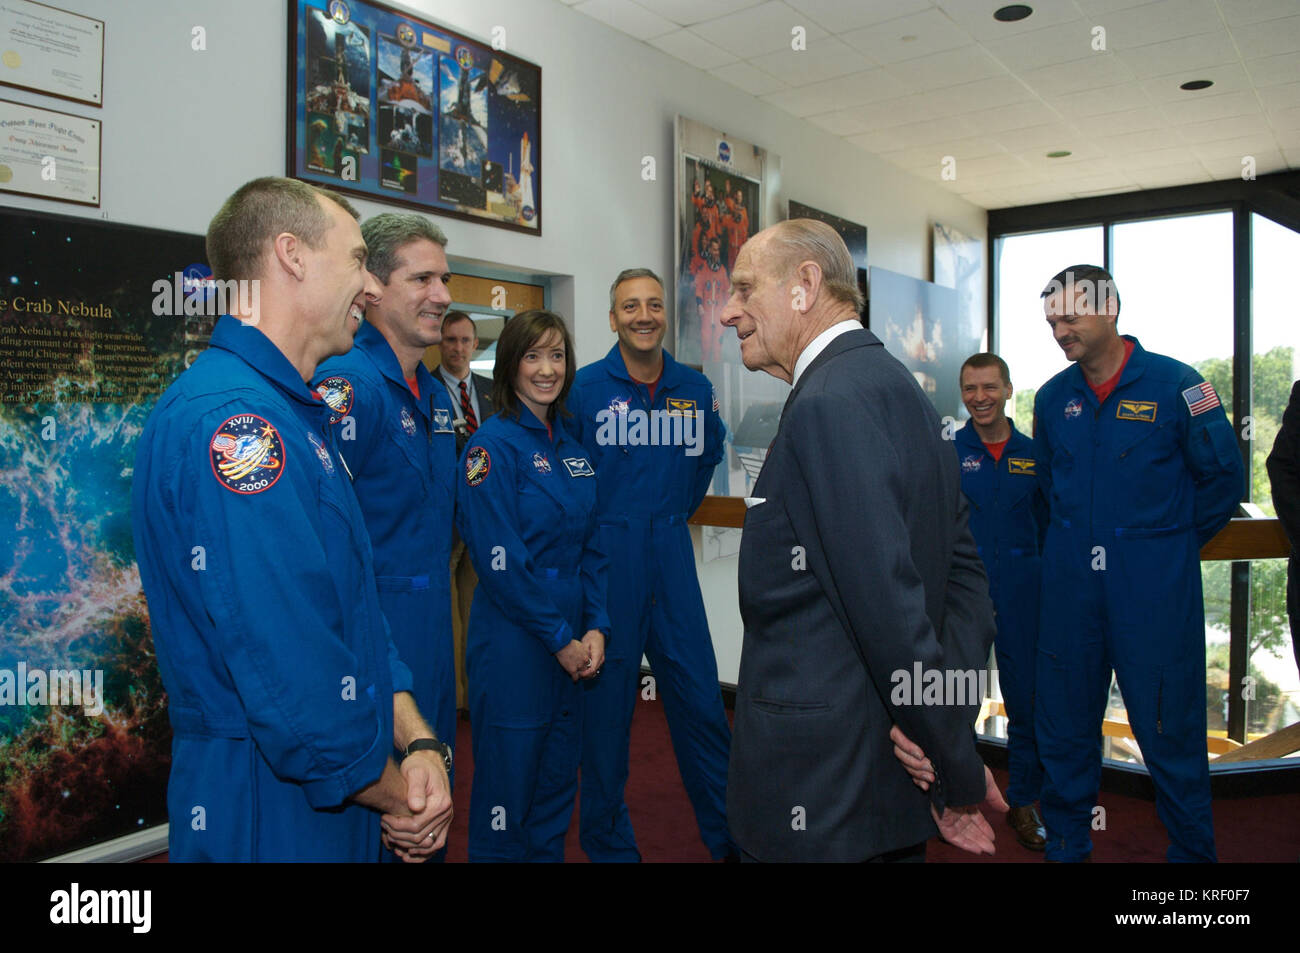 Prince Philip greets astronauts from STS-125 L to R Andrew J Feustel, Michael T Goode, K. Megan McArthur, Michael - Stock Image